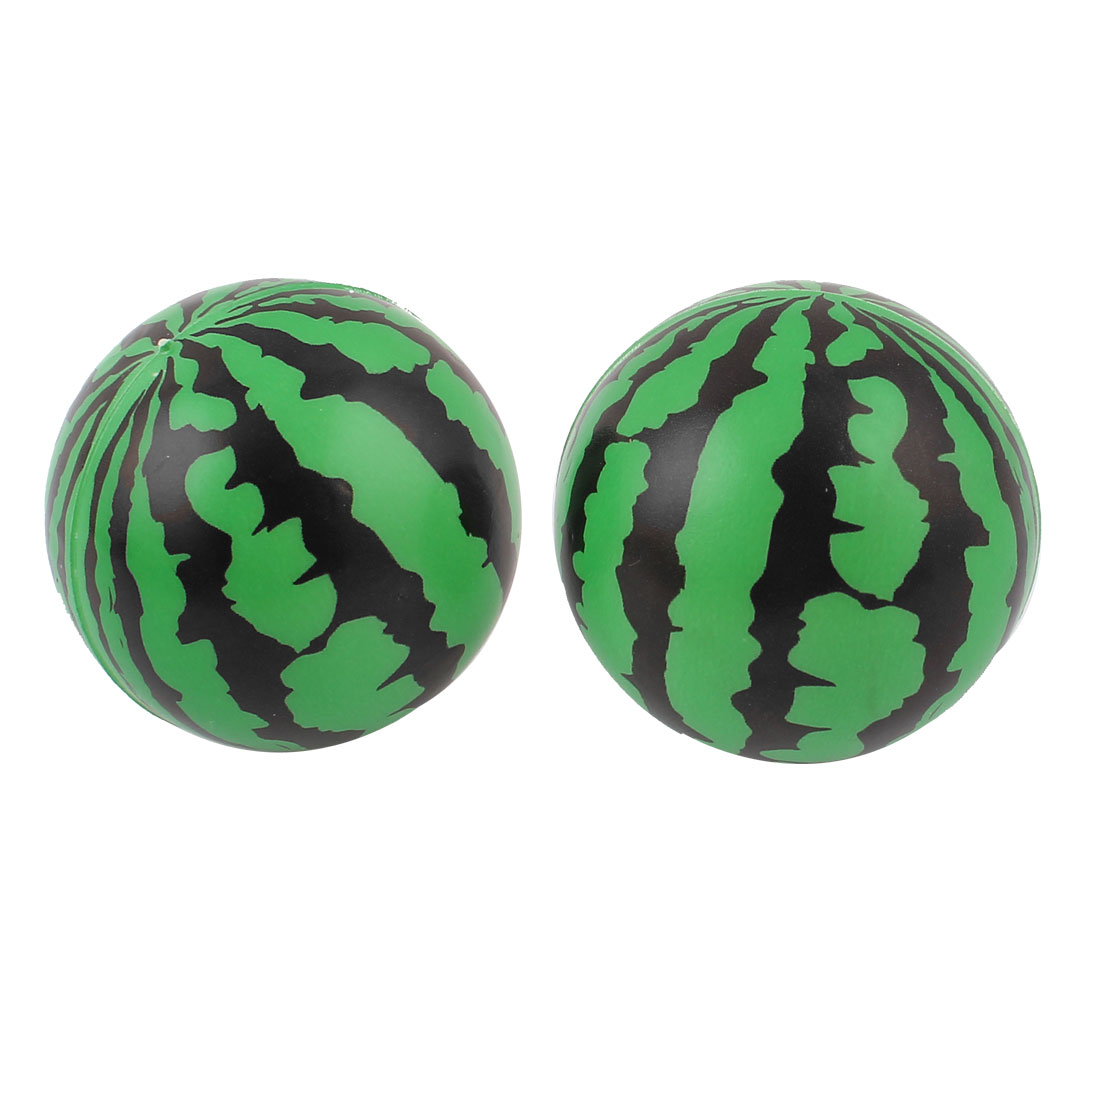 2 Pcs Rubber Watermelon Shape Pet Dog Cat Playing Training Ball Toy Green Black